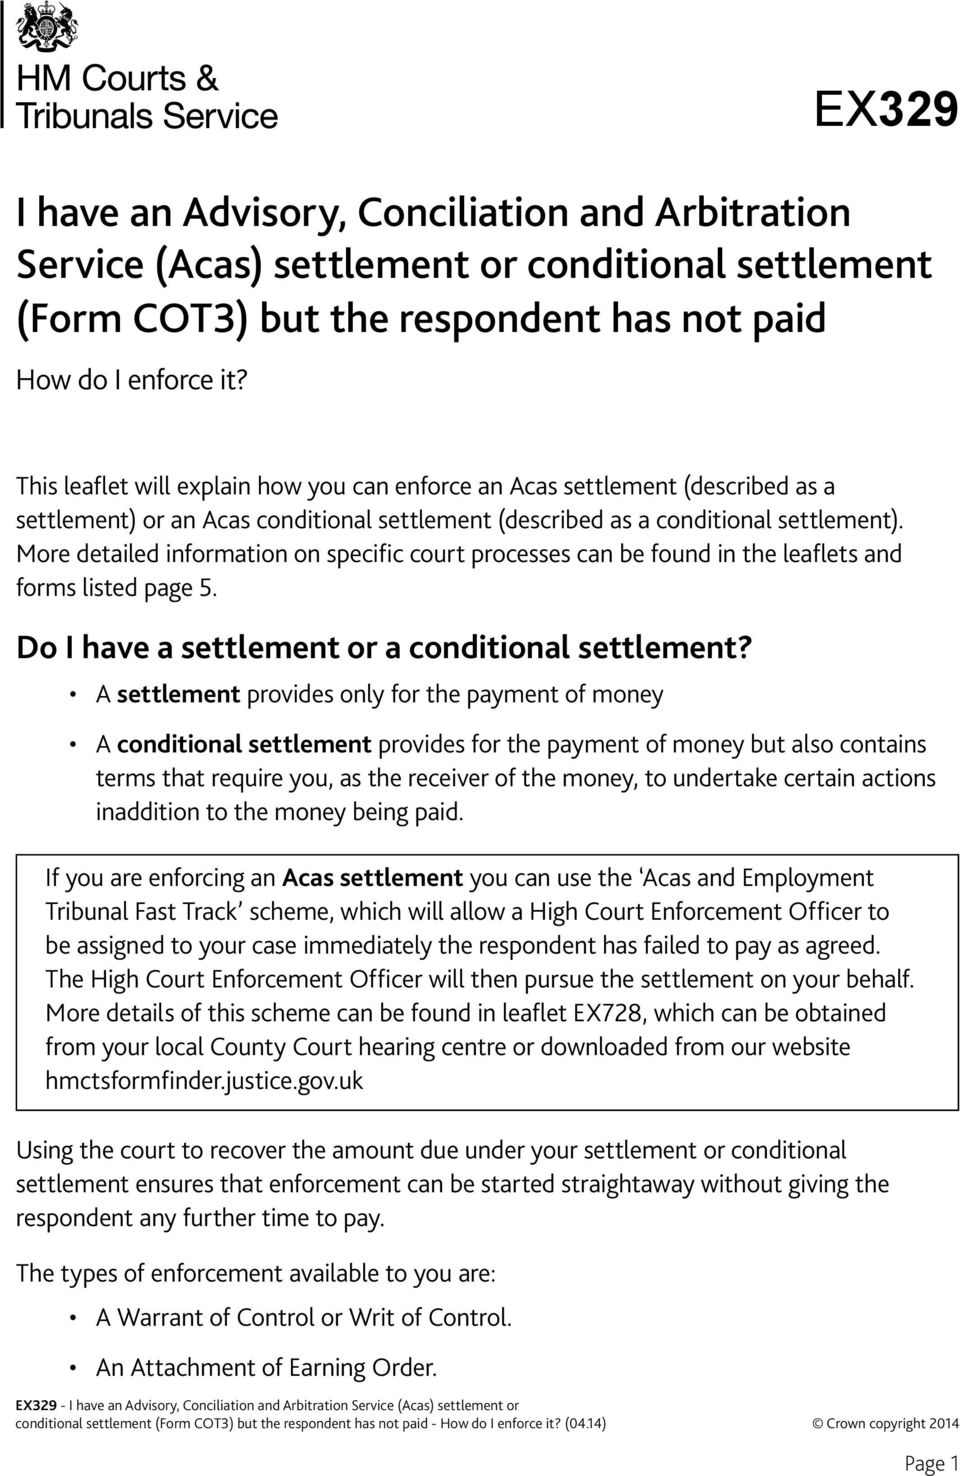 More detailed information on specific court processes can be found in the leaflets and forms listed page 5. Do I have a settlement or a conditional settlement?